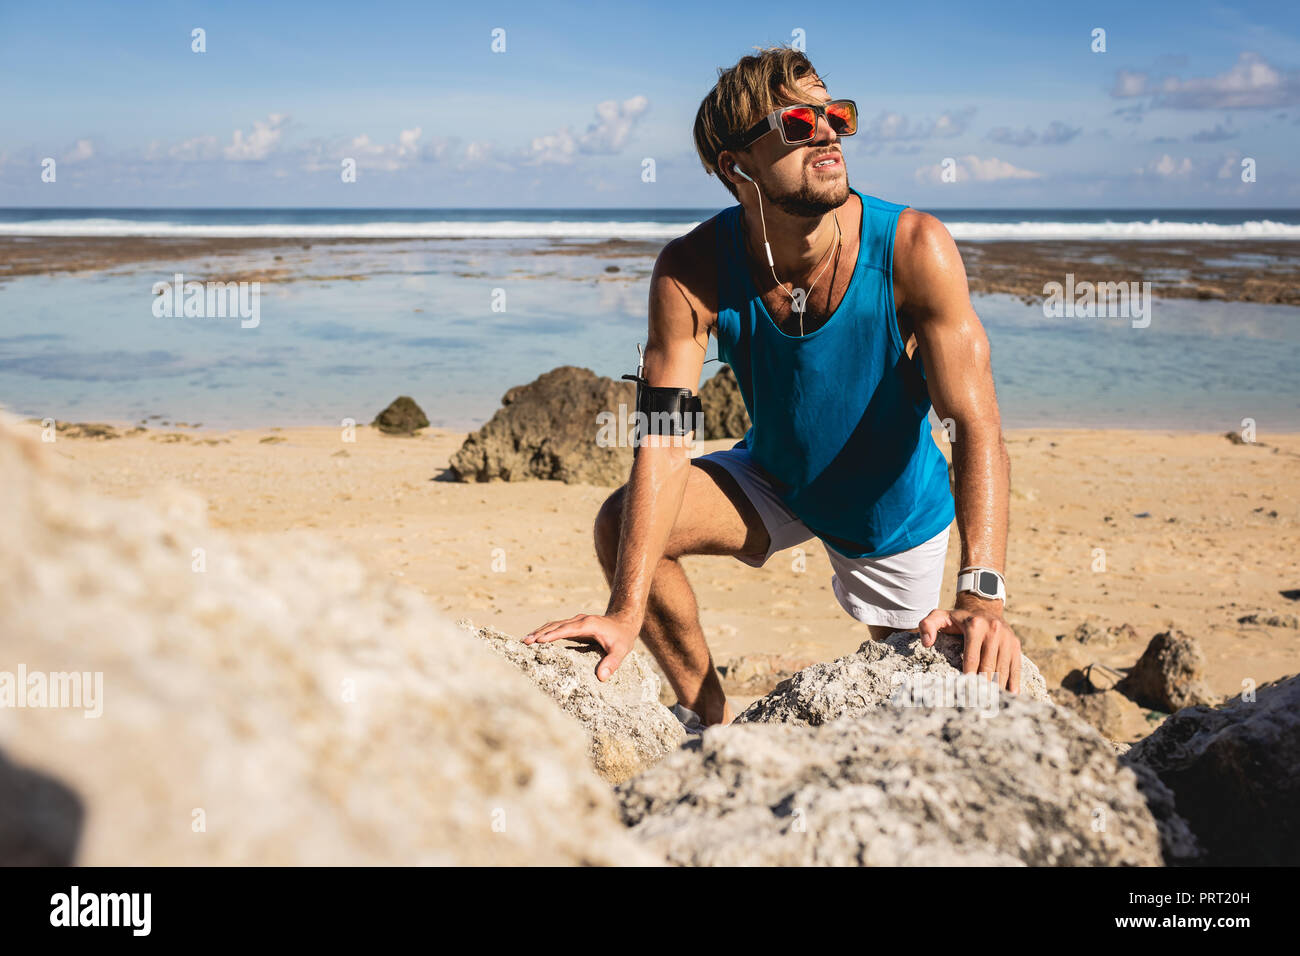 sportsman looking up while climbing on rocks on beach, Bali, Indonesia - Stock Image